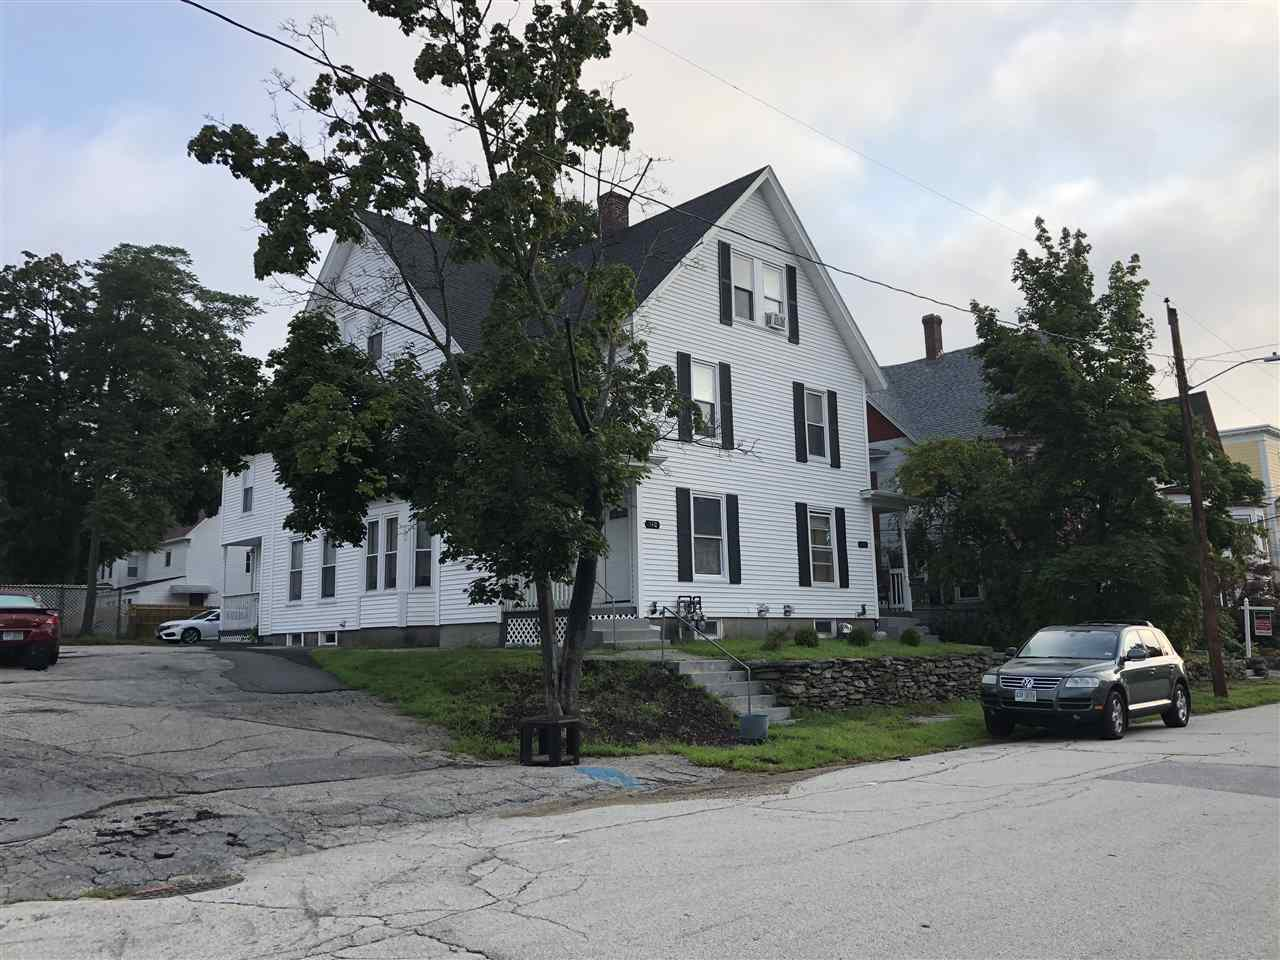 image of Manchester NH  4 Unit Multi Family | sq.ft. 5912